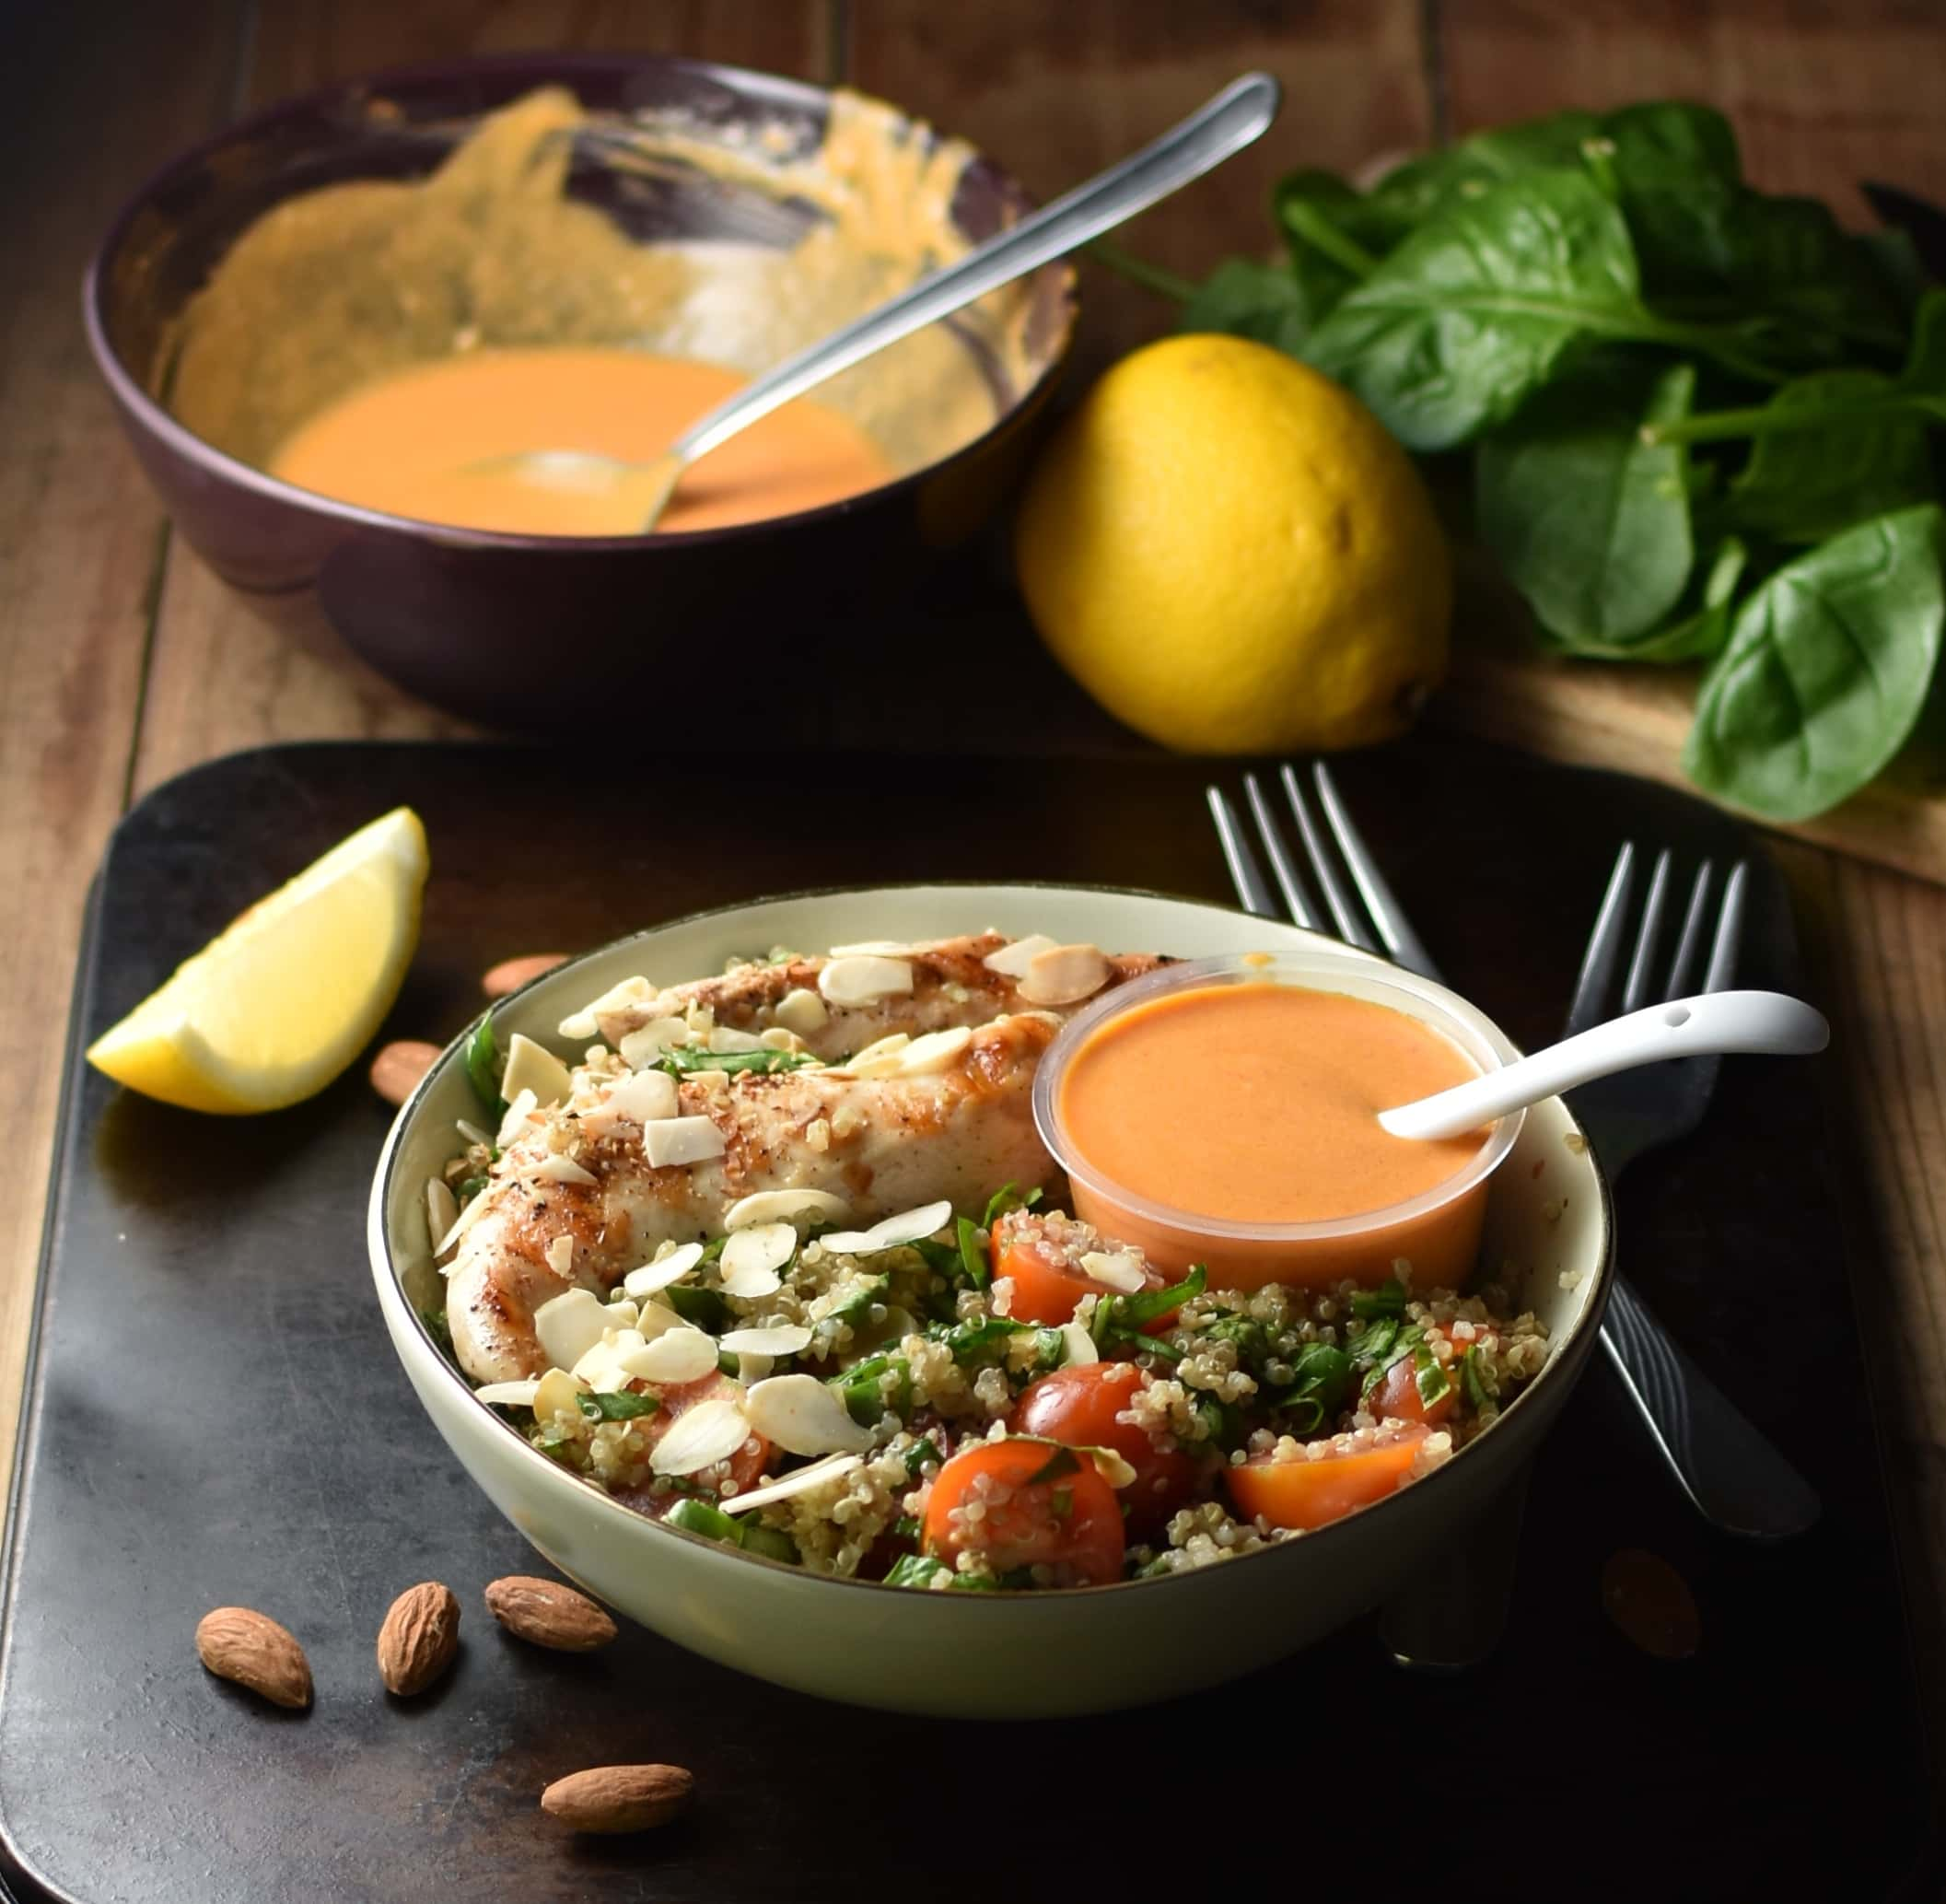 Side view of quinoa, chicken, spinach, tomato salad in green bowl with orange coloured dressing in small dish and white spoon inside, with 2 forks, lemon dressing in purple bowl and spinach in background.